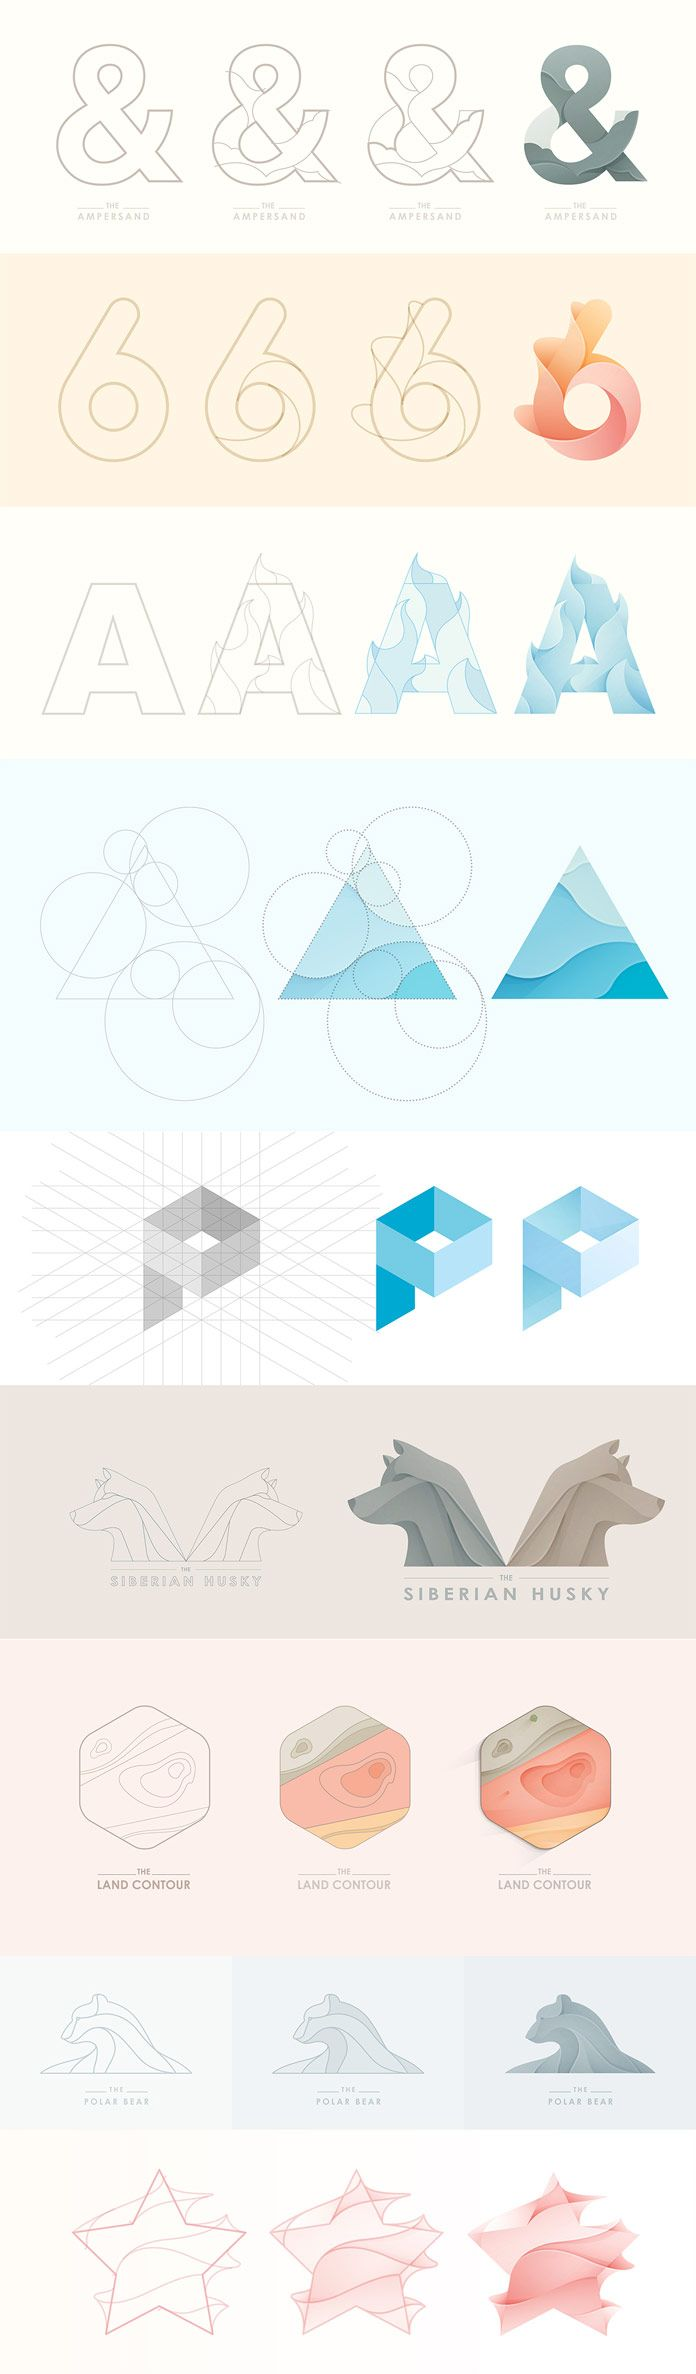 Logo designs - process case studies by Yoga Perdana.